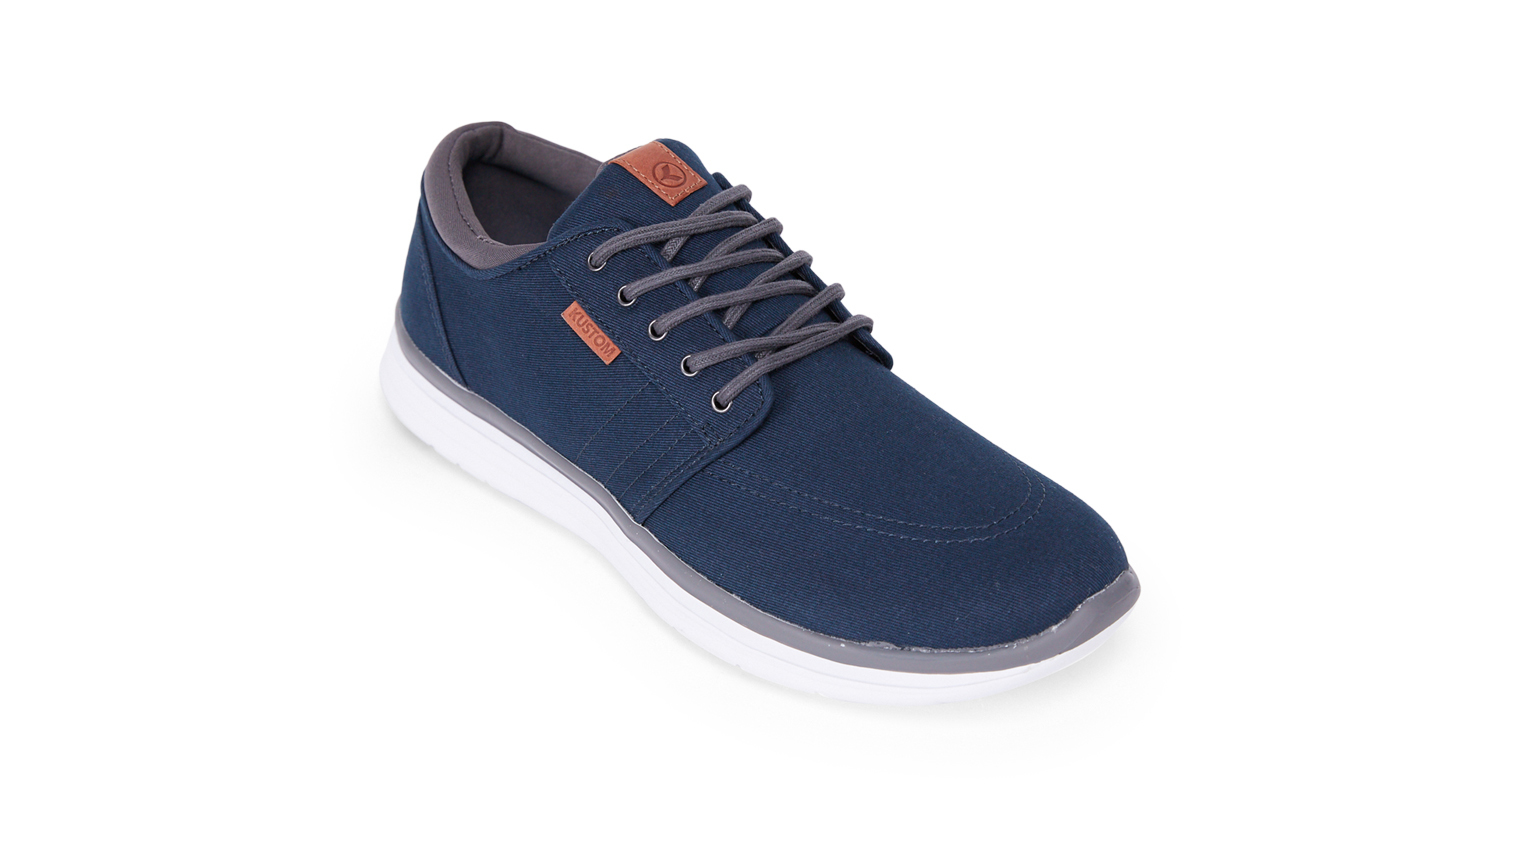 KUSTOM SHOES REMARK PLUS SHOE / NAVY